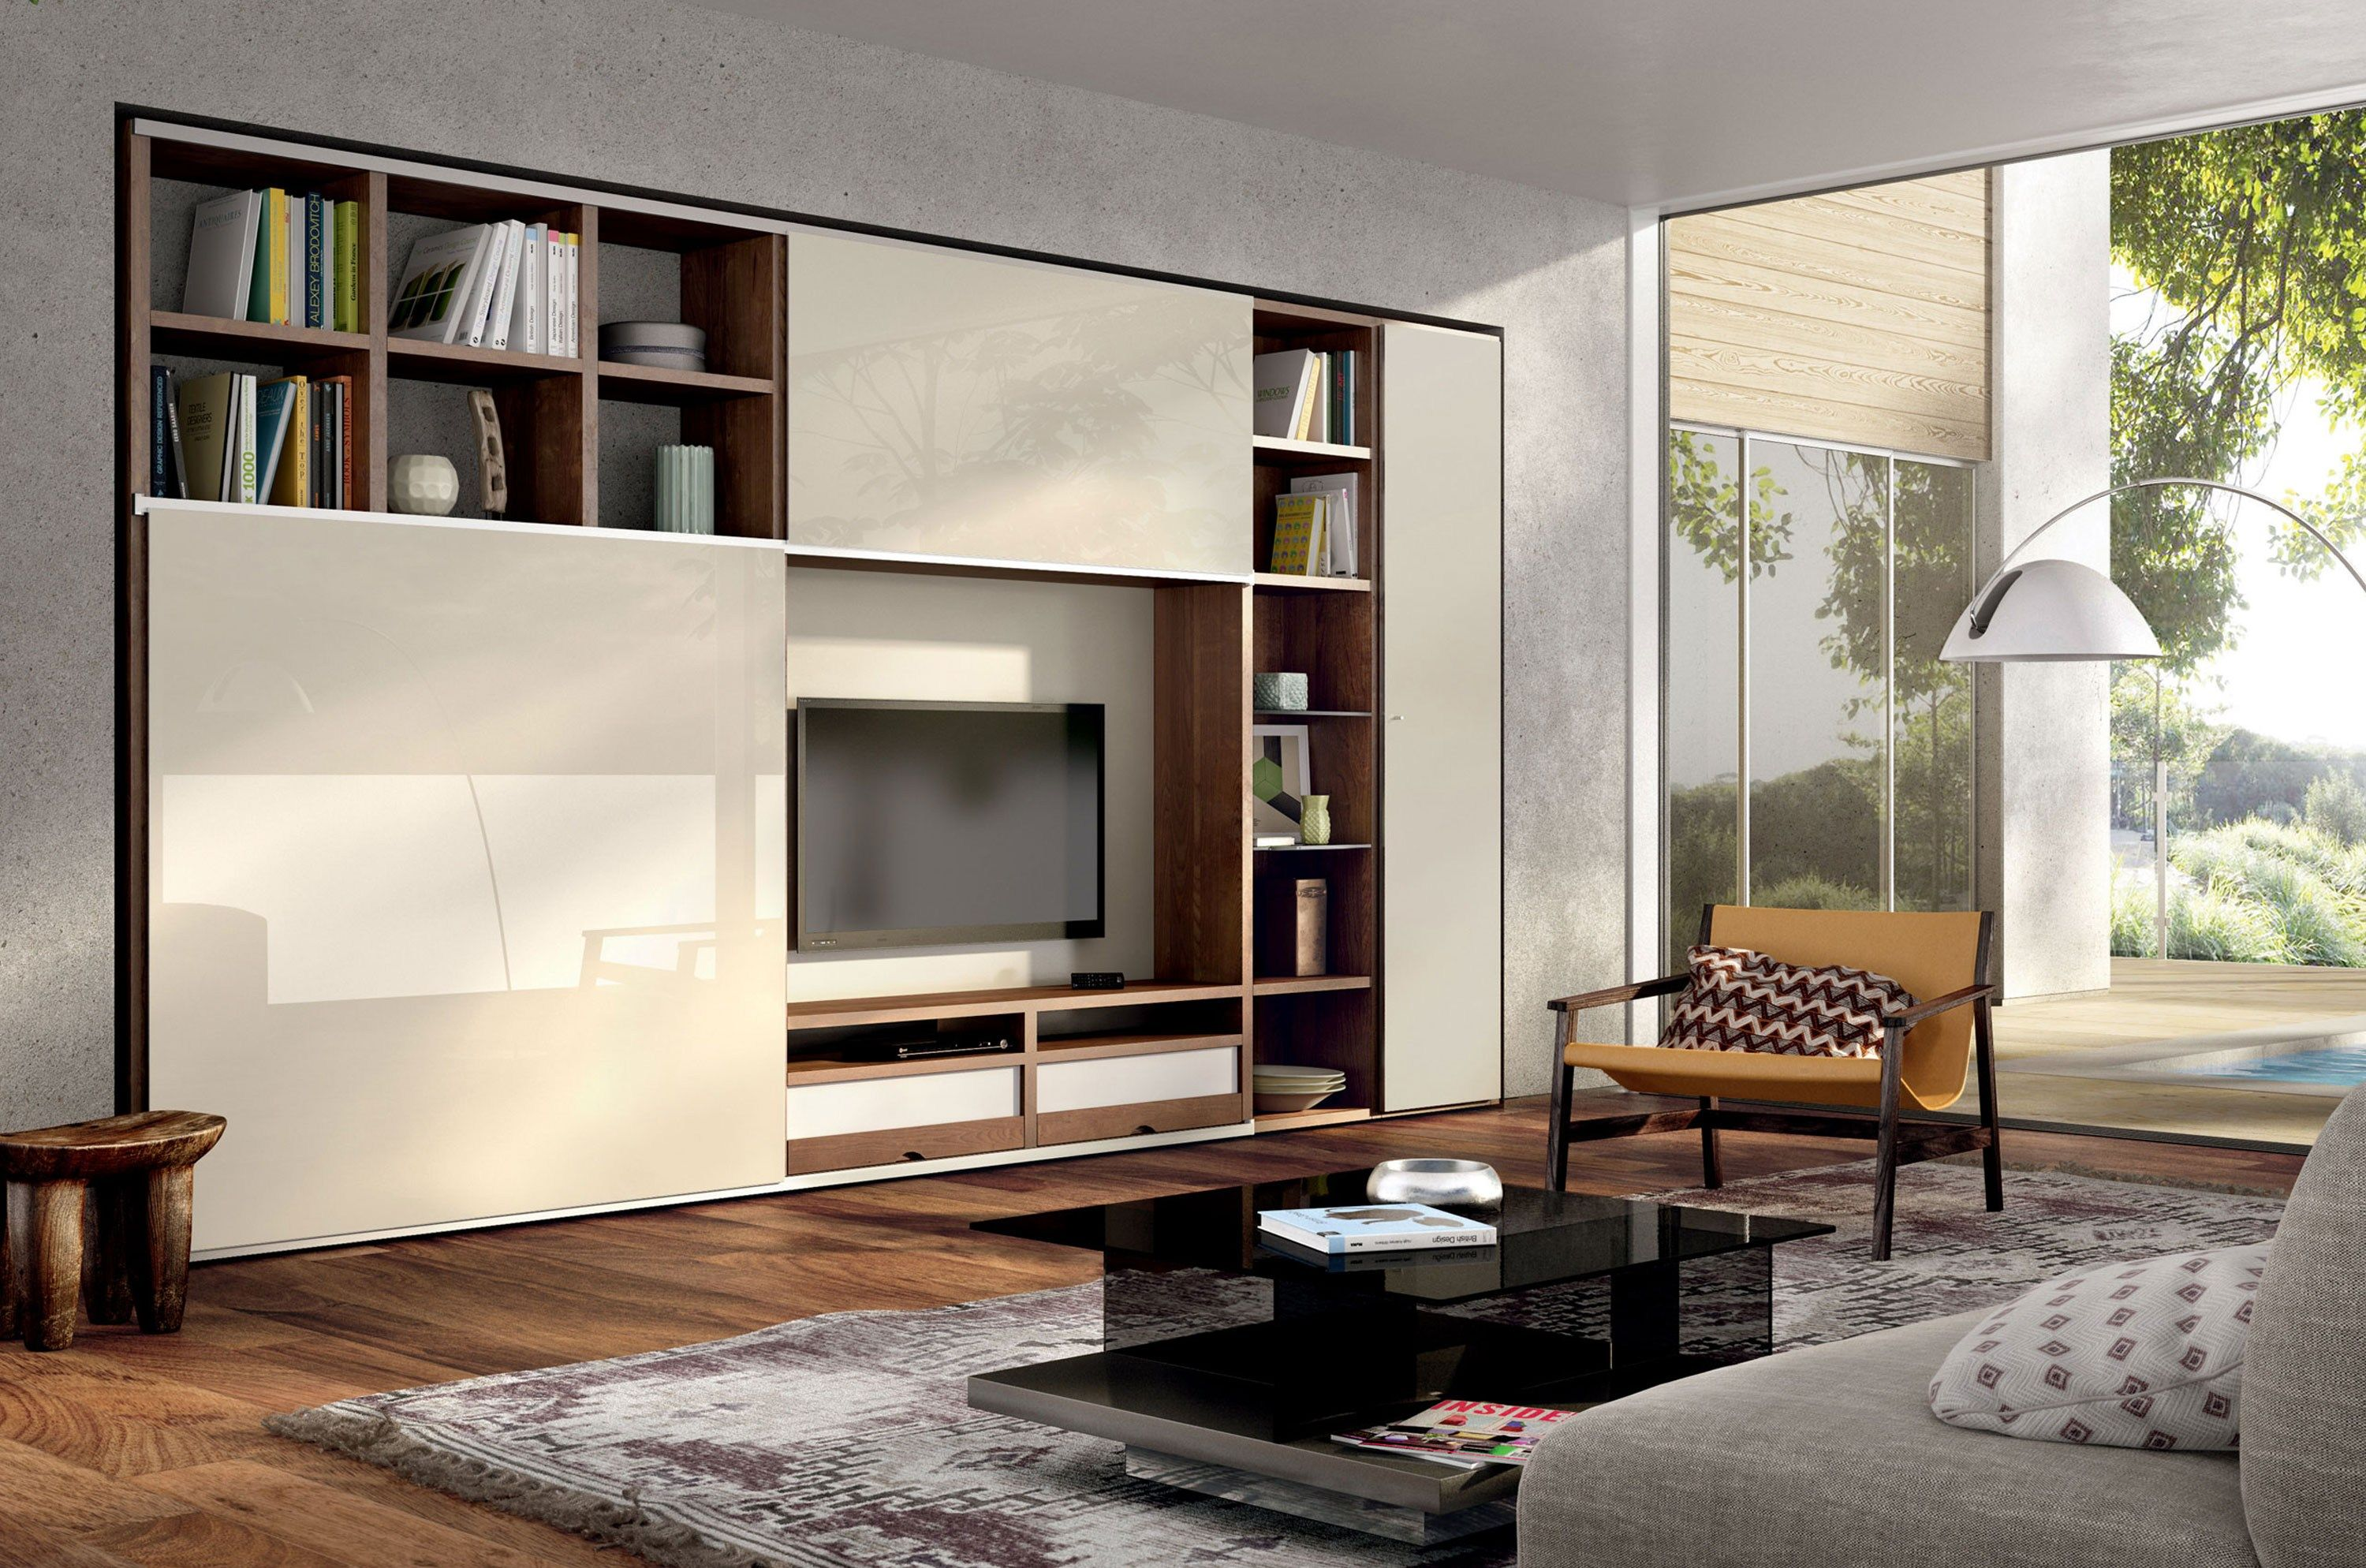 Mega Design Tv Wall System By Hulsta Werke Huls Living Room Wall Units Home Window Replacement Home Decor